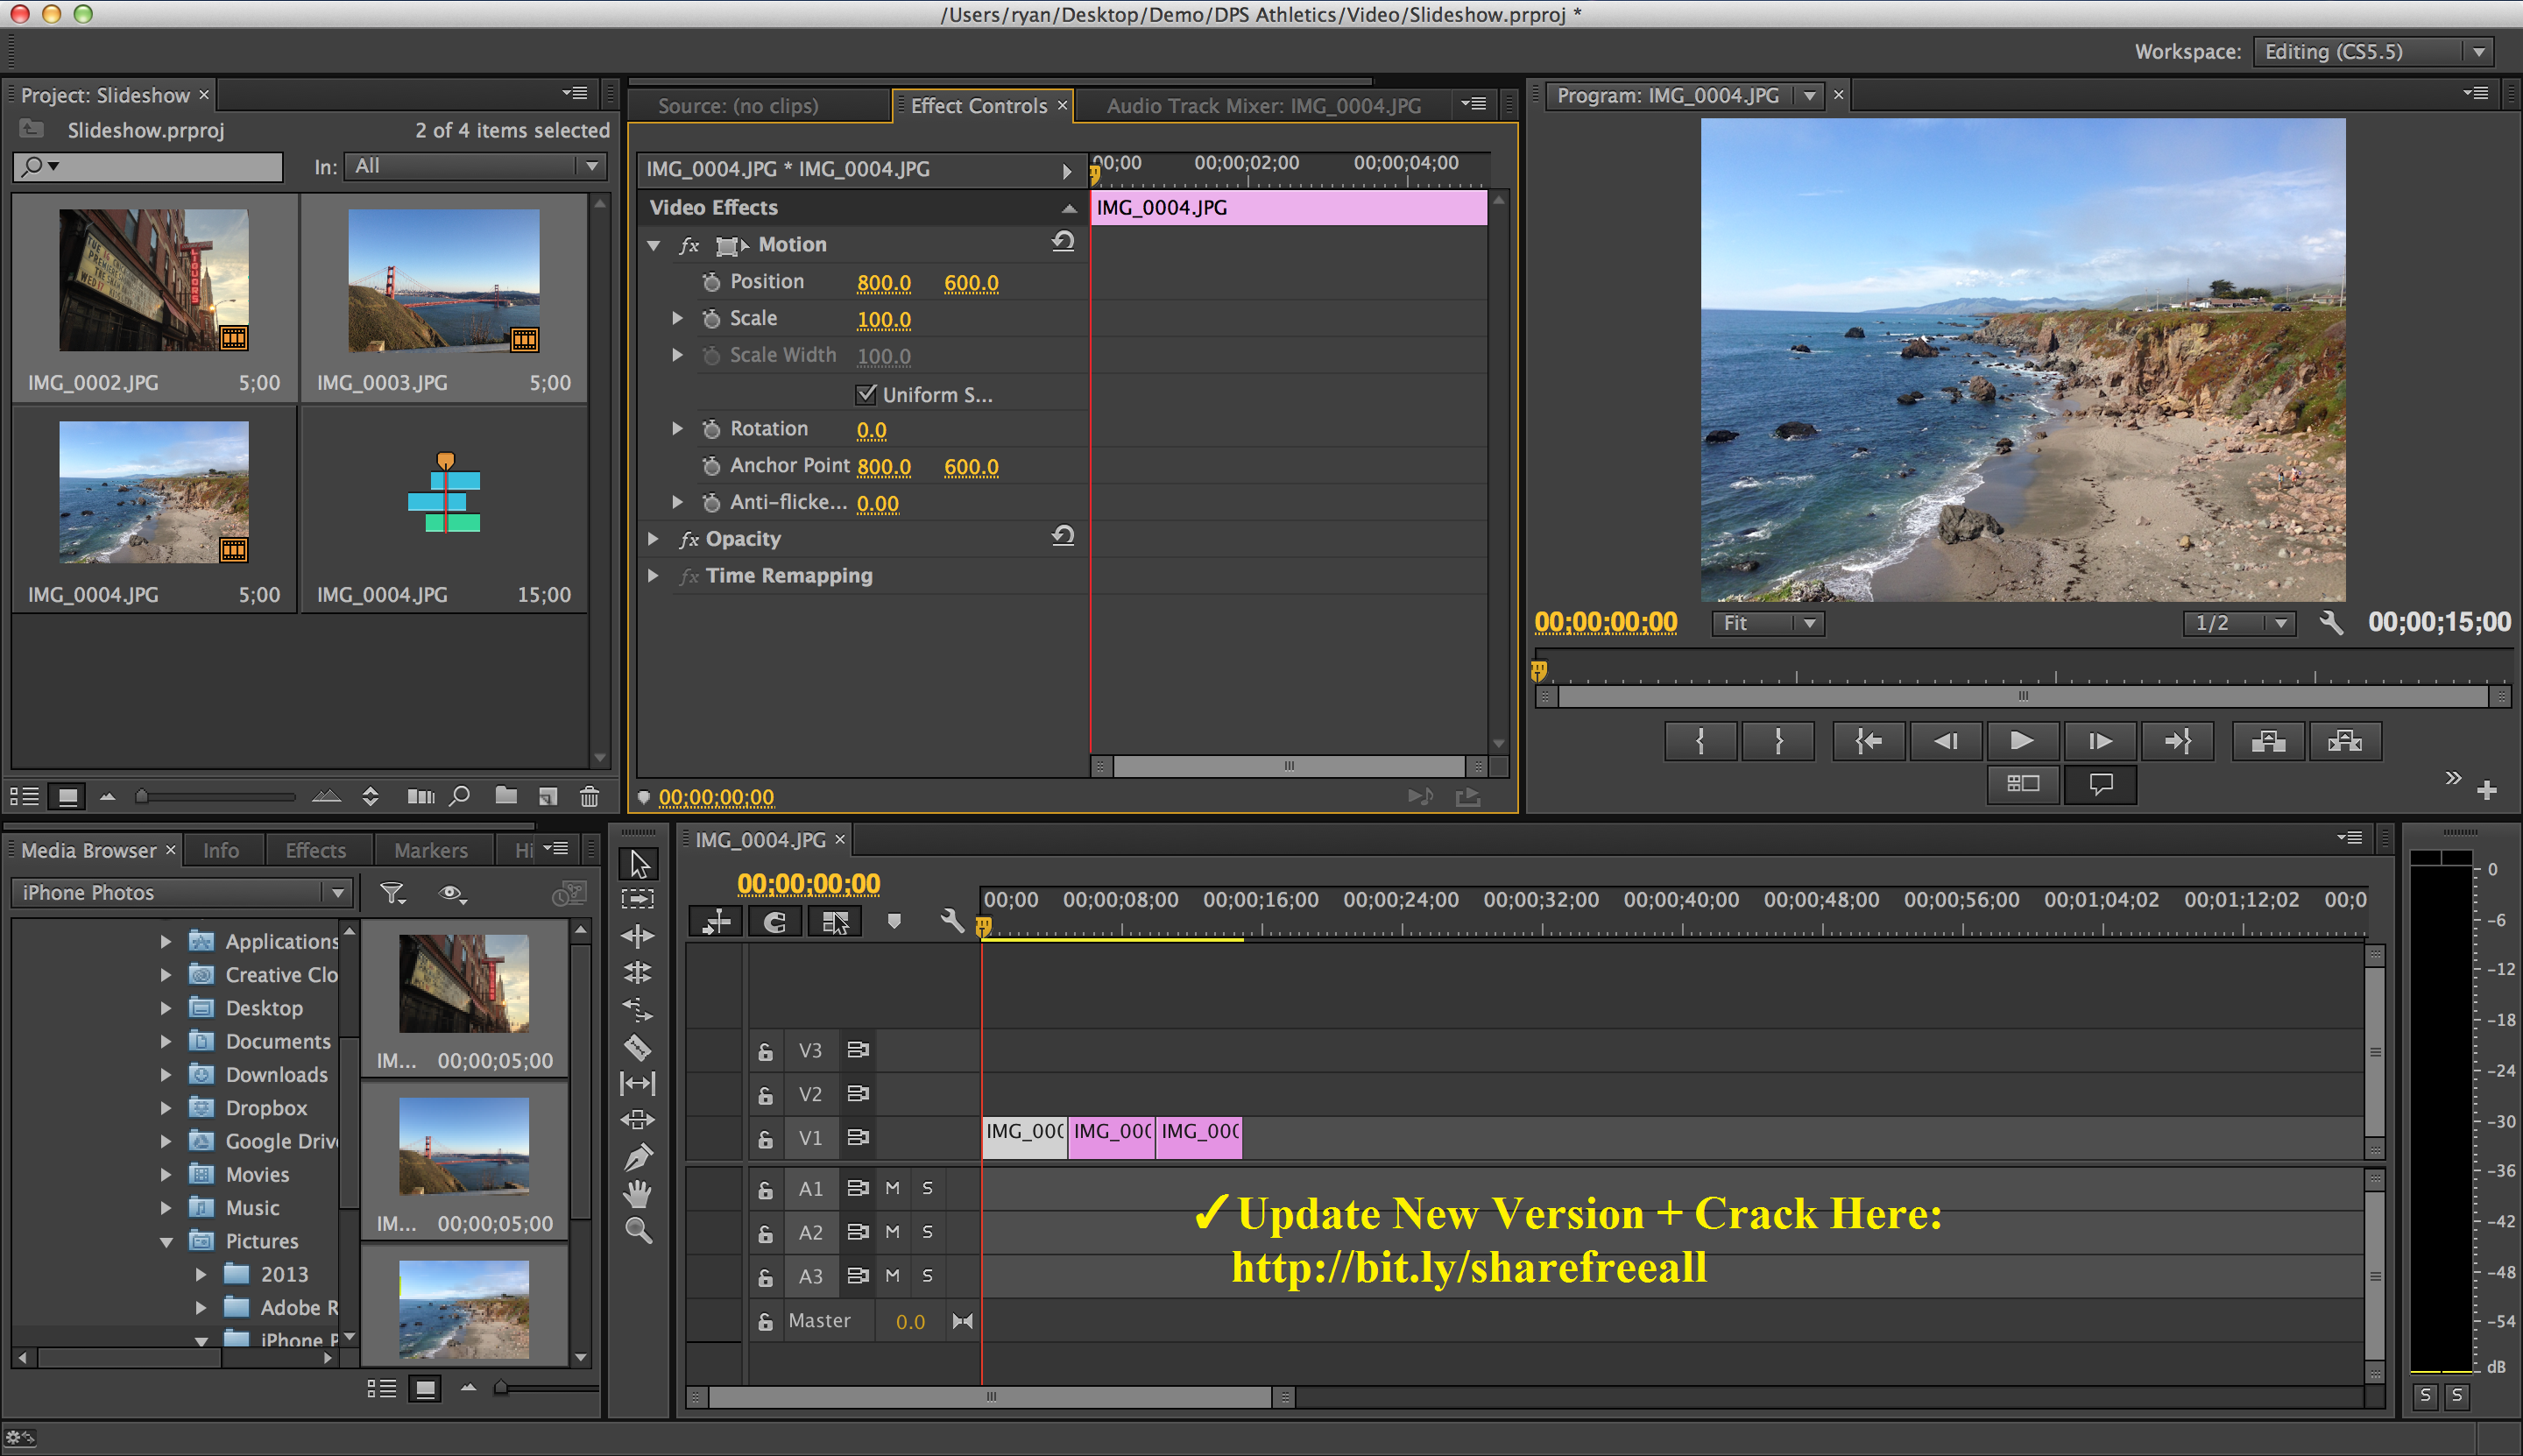 adobe premiere pro cs6 serial number crack full download